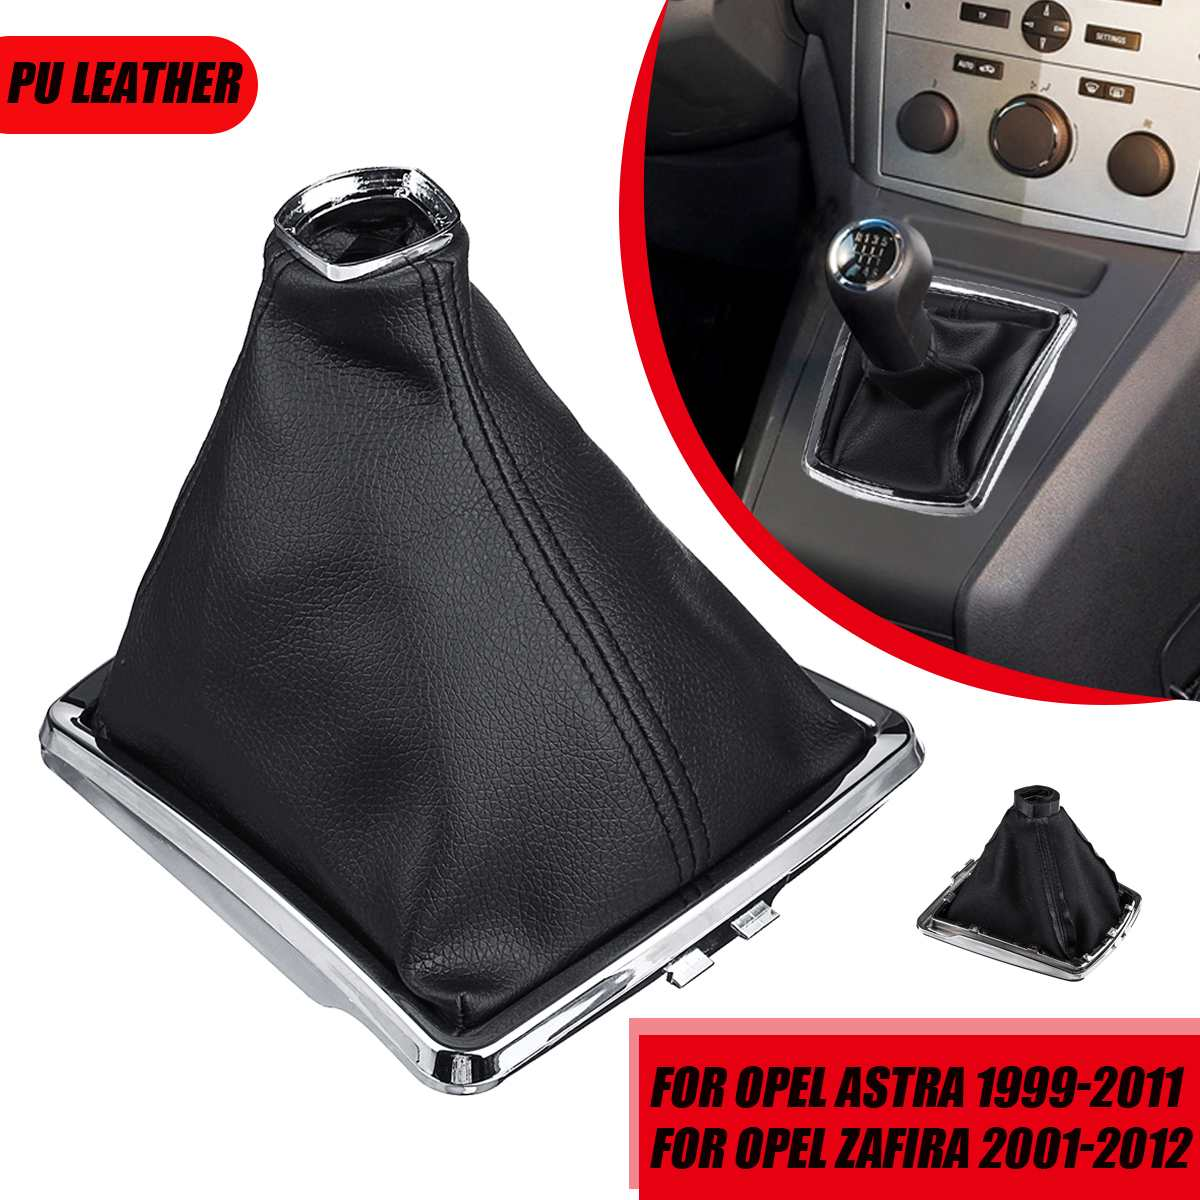 PU Leather Car Gear Gaiter Boot Cover Shift Knob Gaitor Boot For Opel Astra 1999-2011 Zafira 2001-2012